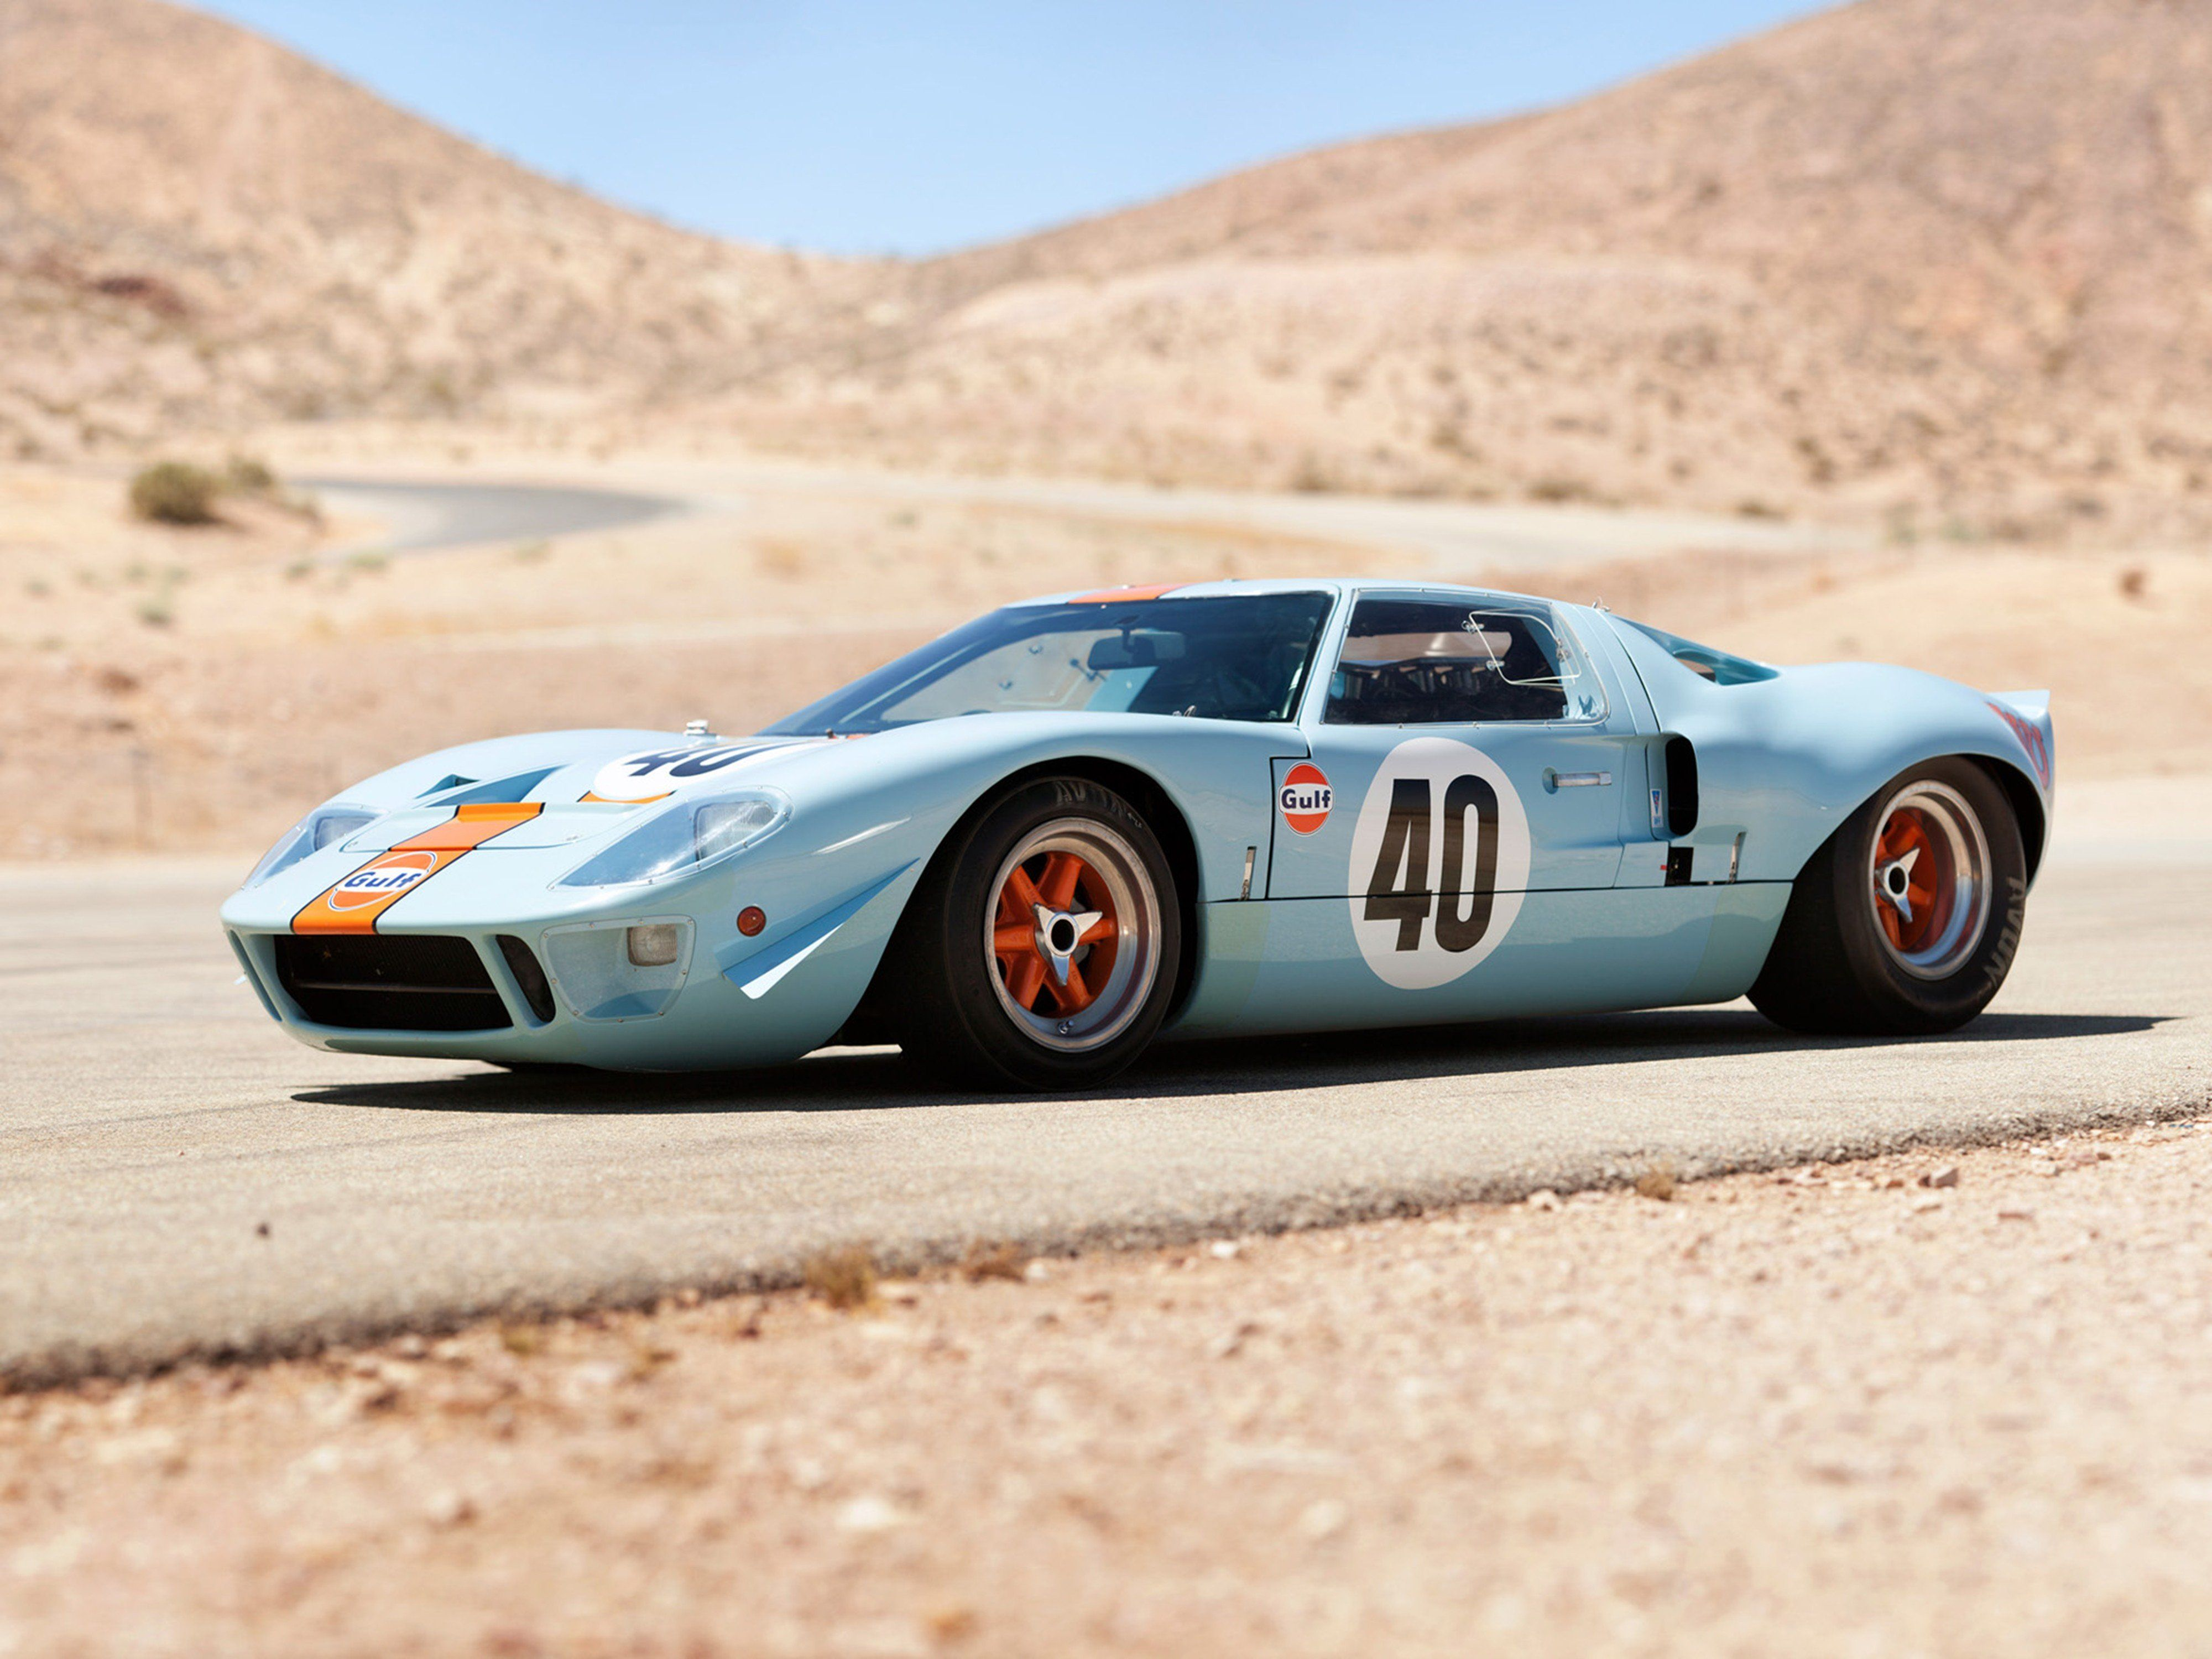 Photos Of Ford Gt40 Race Cars 1968 Gulf Ford Gt40 Le Mans Racing Car Race Classic 4000x3000 Ford Gt40 Classic Racing Cars Celebrity Cars